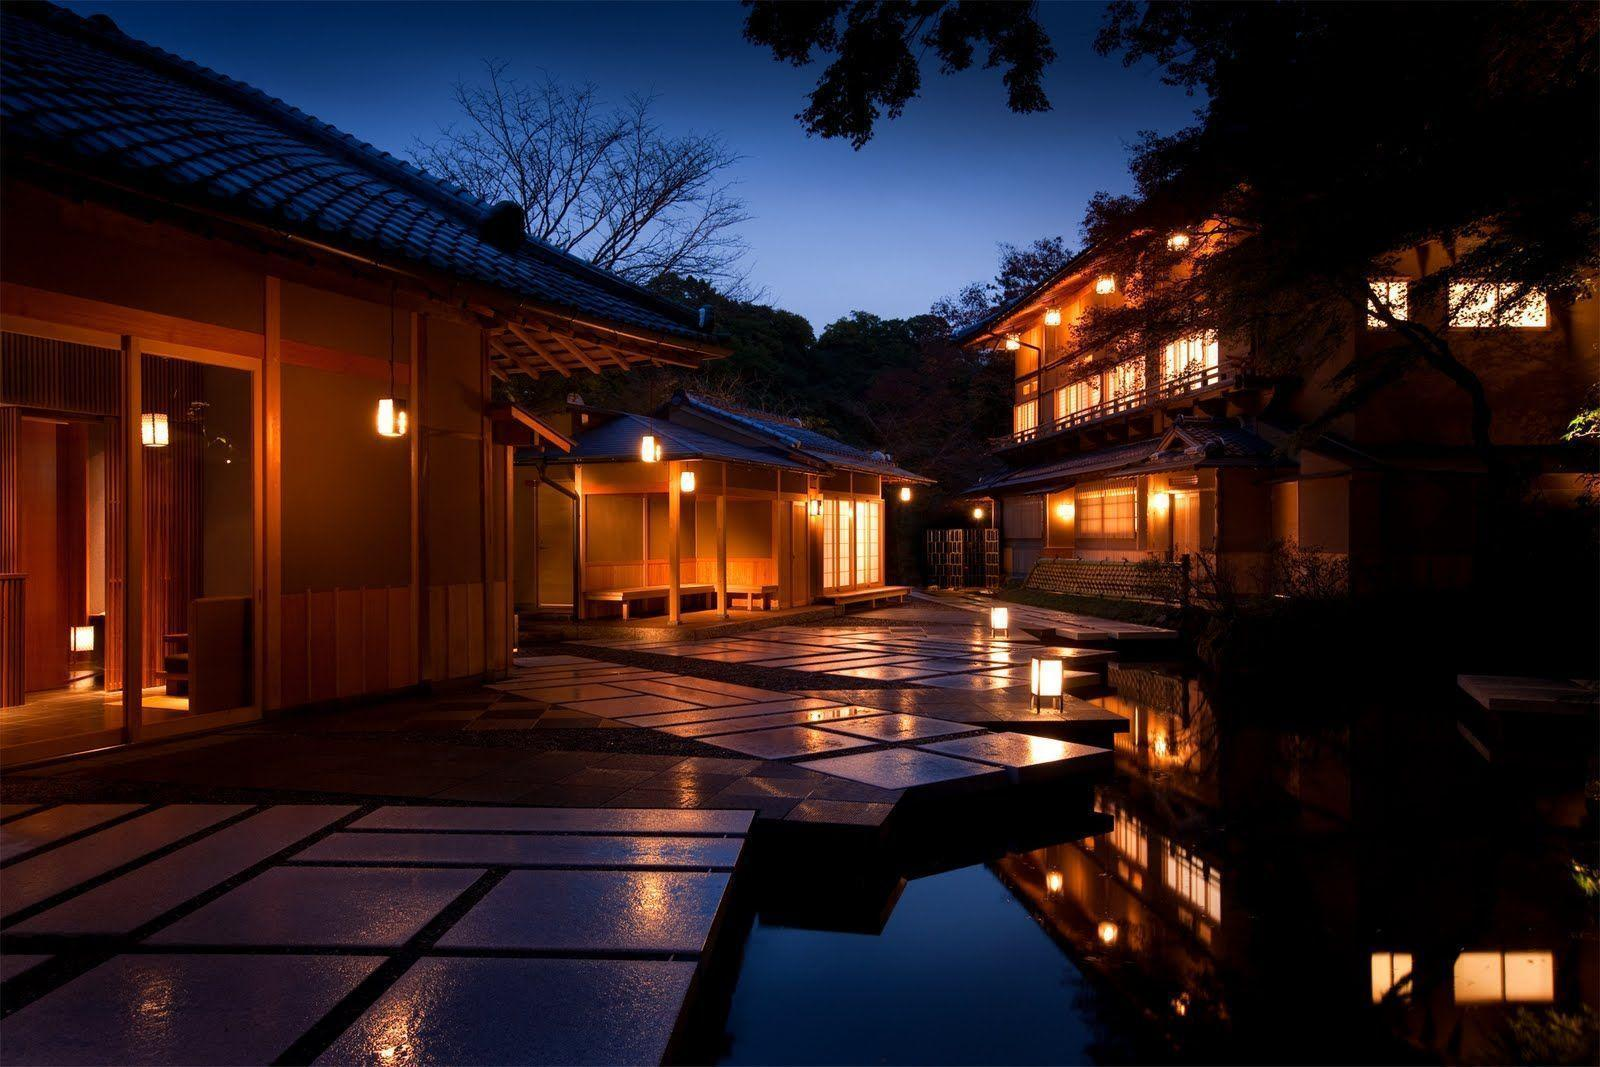 Kyoto Wallpapers - Wallpaper Cave